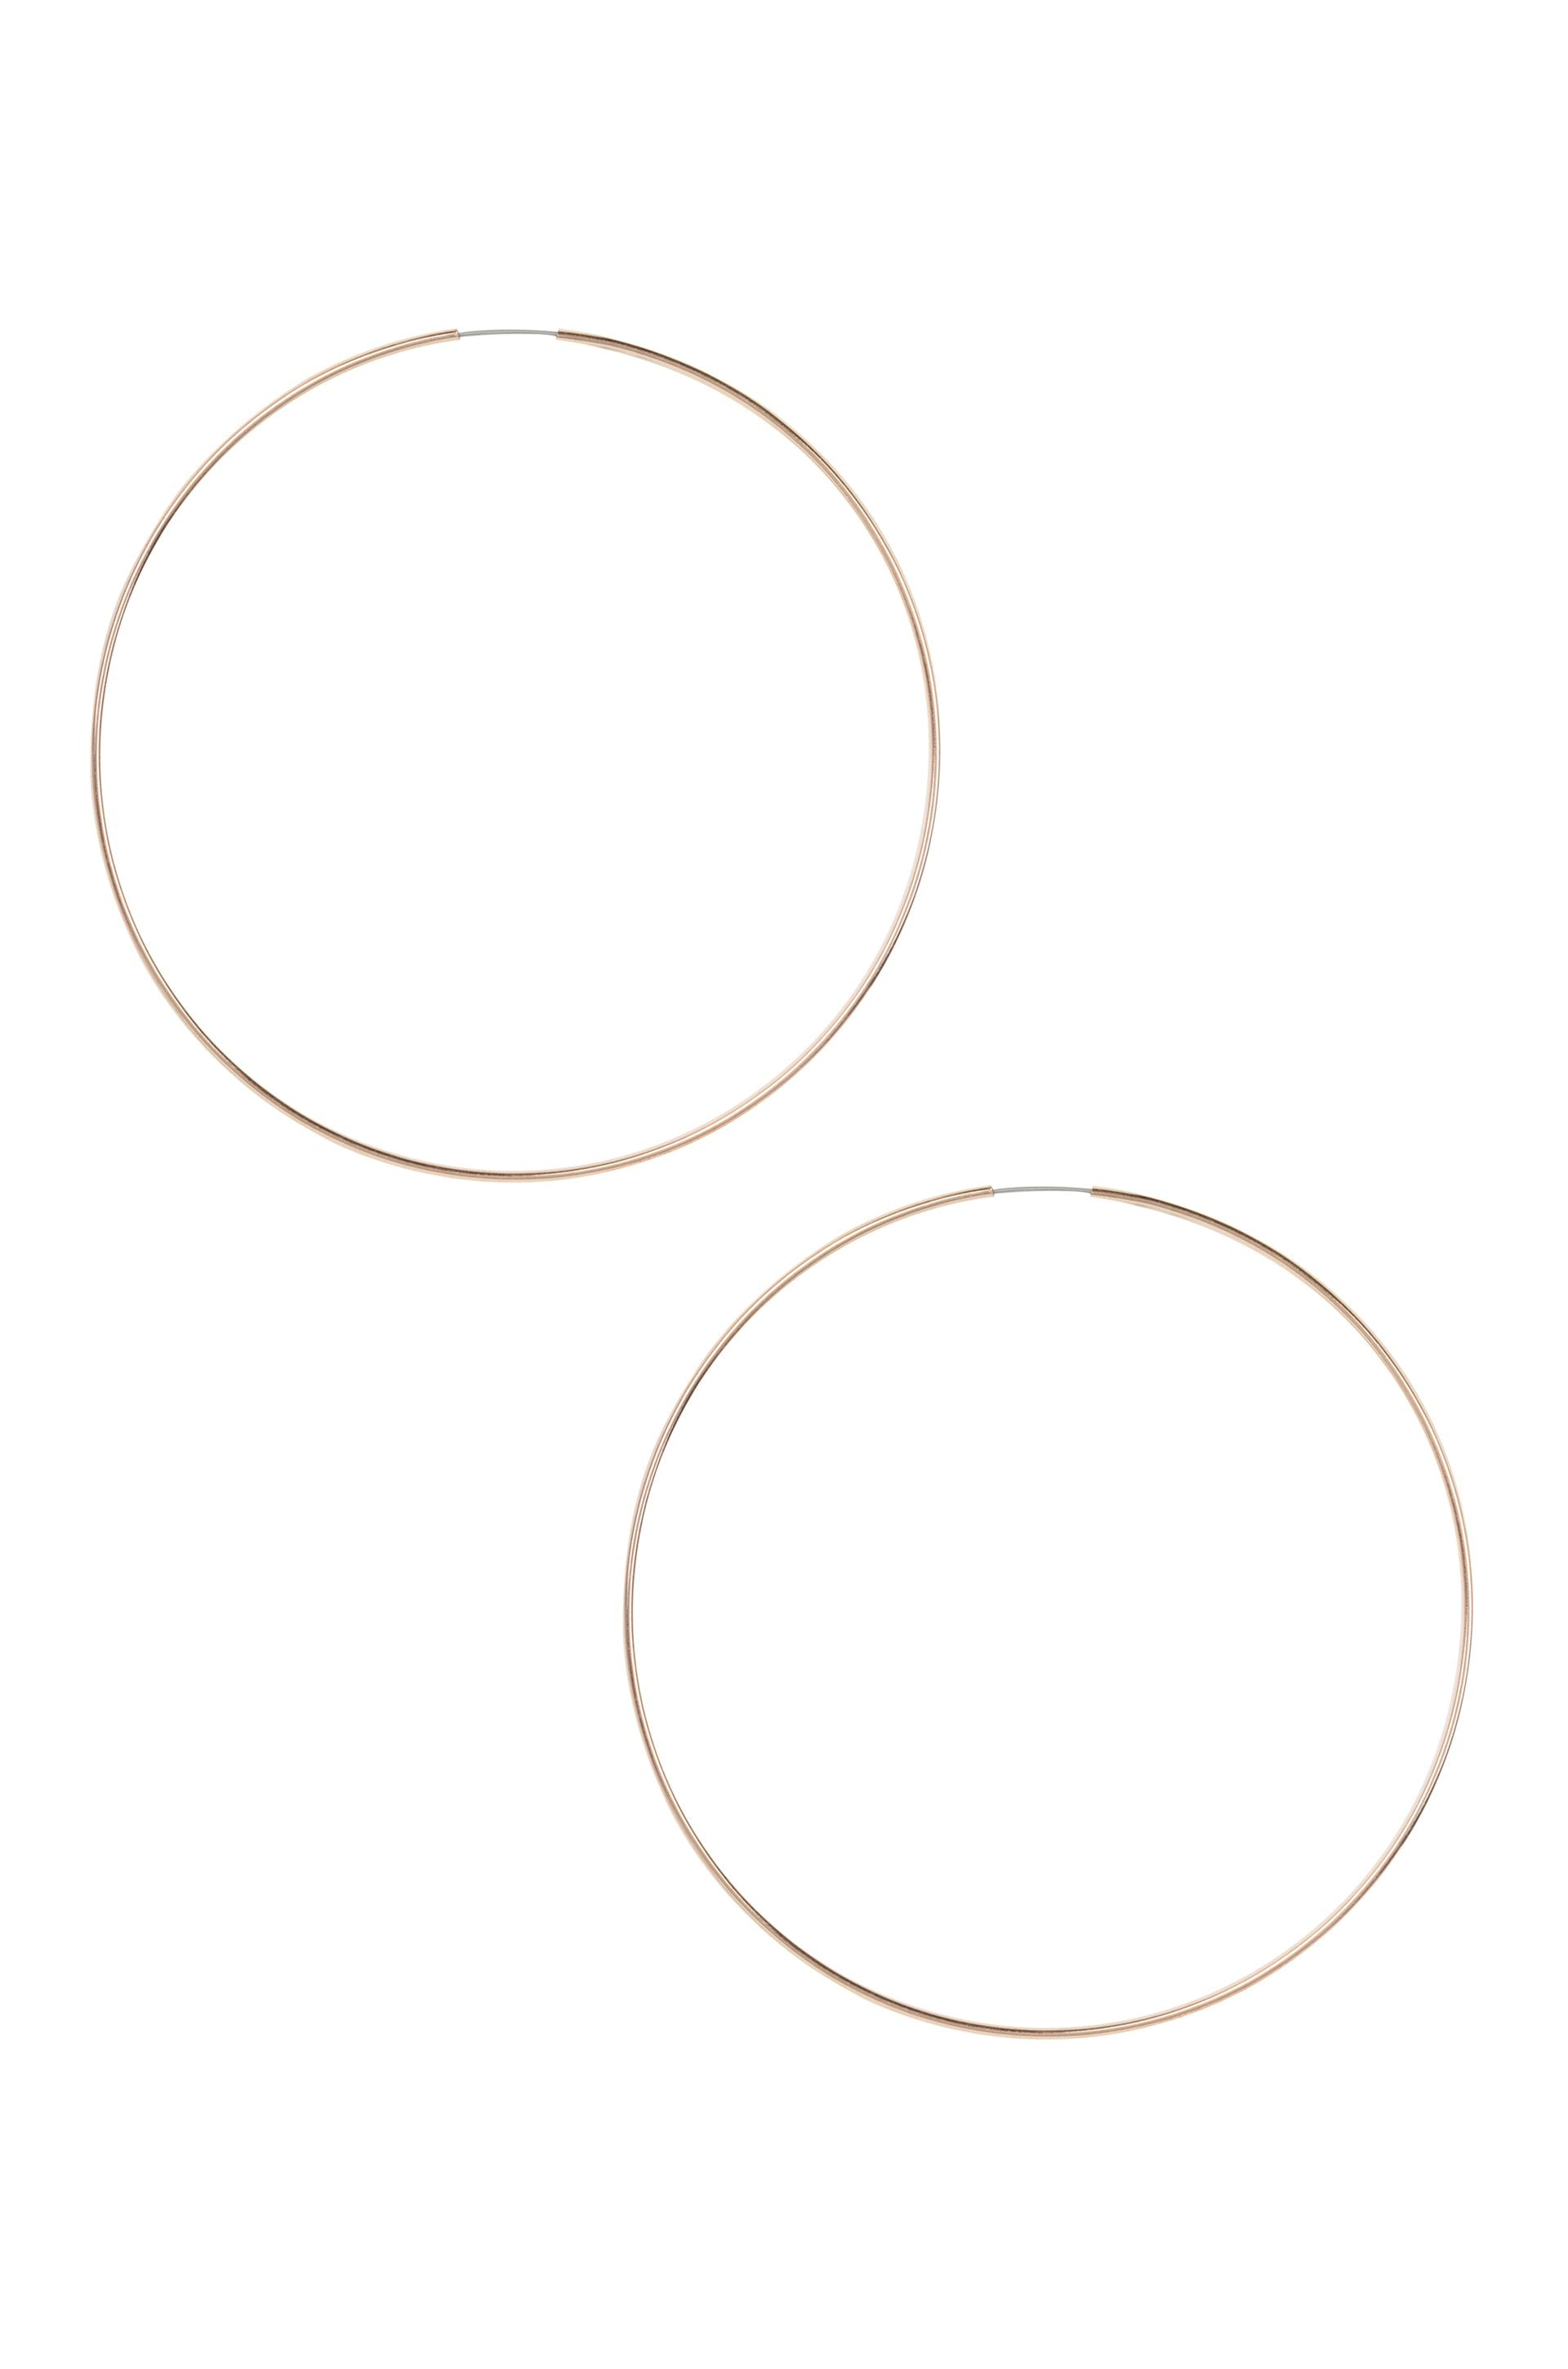 Sass Hoops in Rose Gold - Large